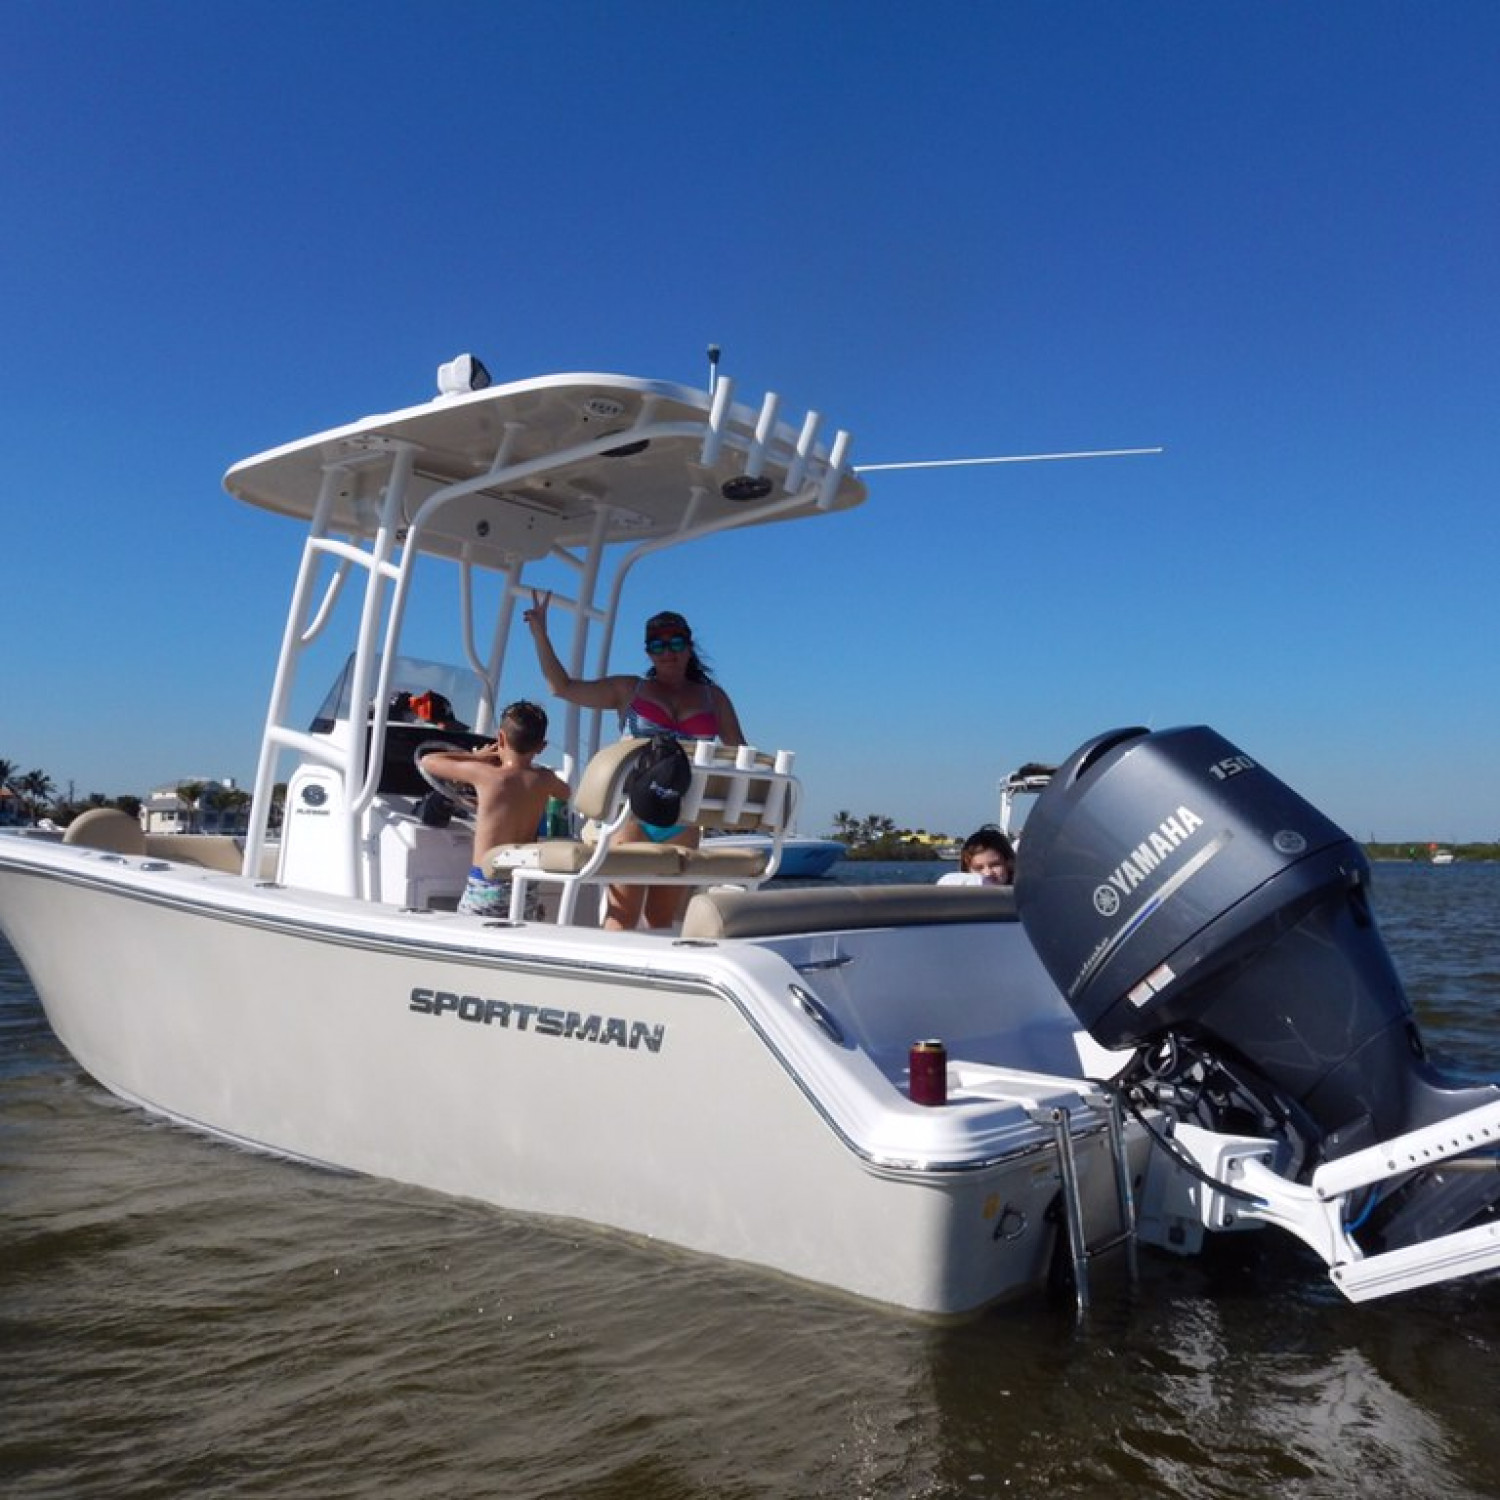 Title: Winter Boating in South Florida - On board their Sportsman Heritage 211 Center Console - Location: Jupiter, FL. Participating in the Photo Contest #SportsmanDecember2017